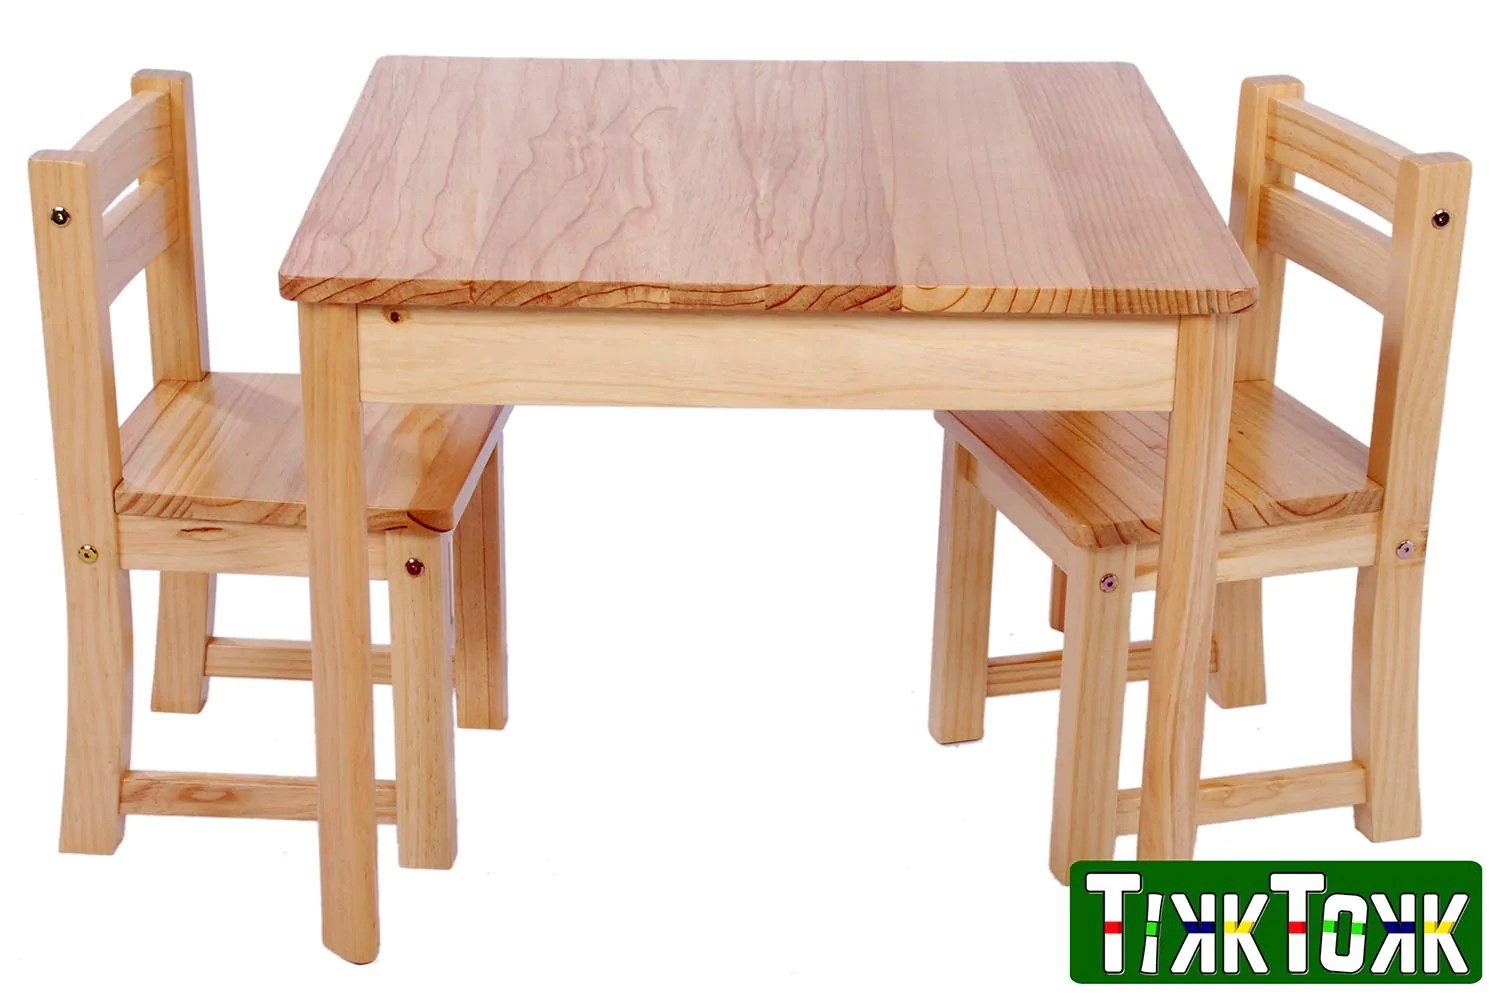 Tufstuf Junior Pine Table And Chairs Set 50cm Table